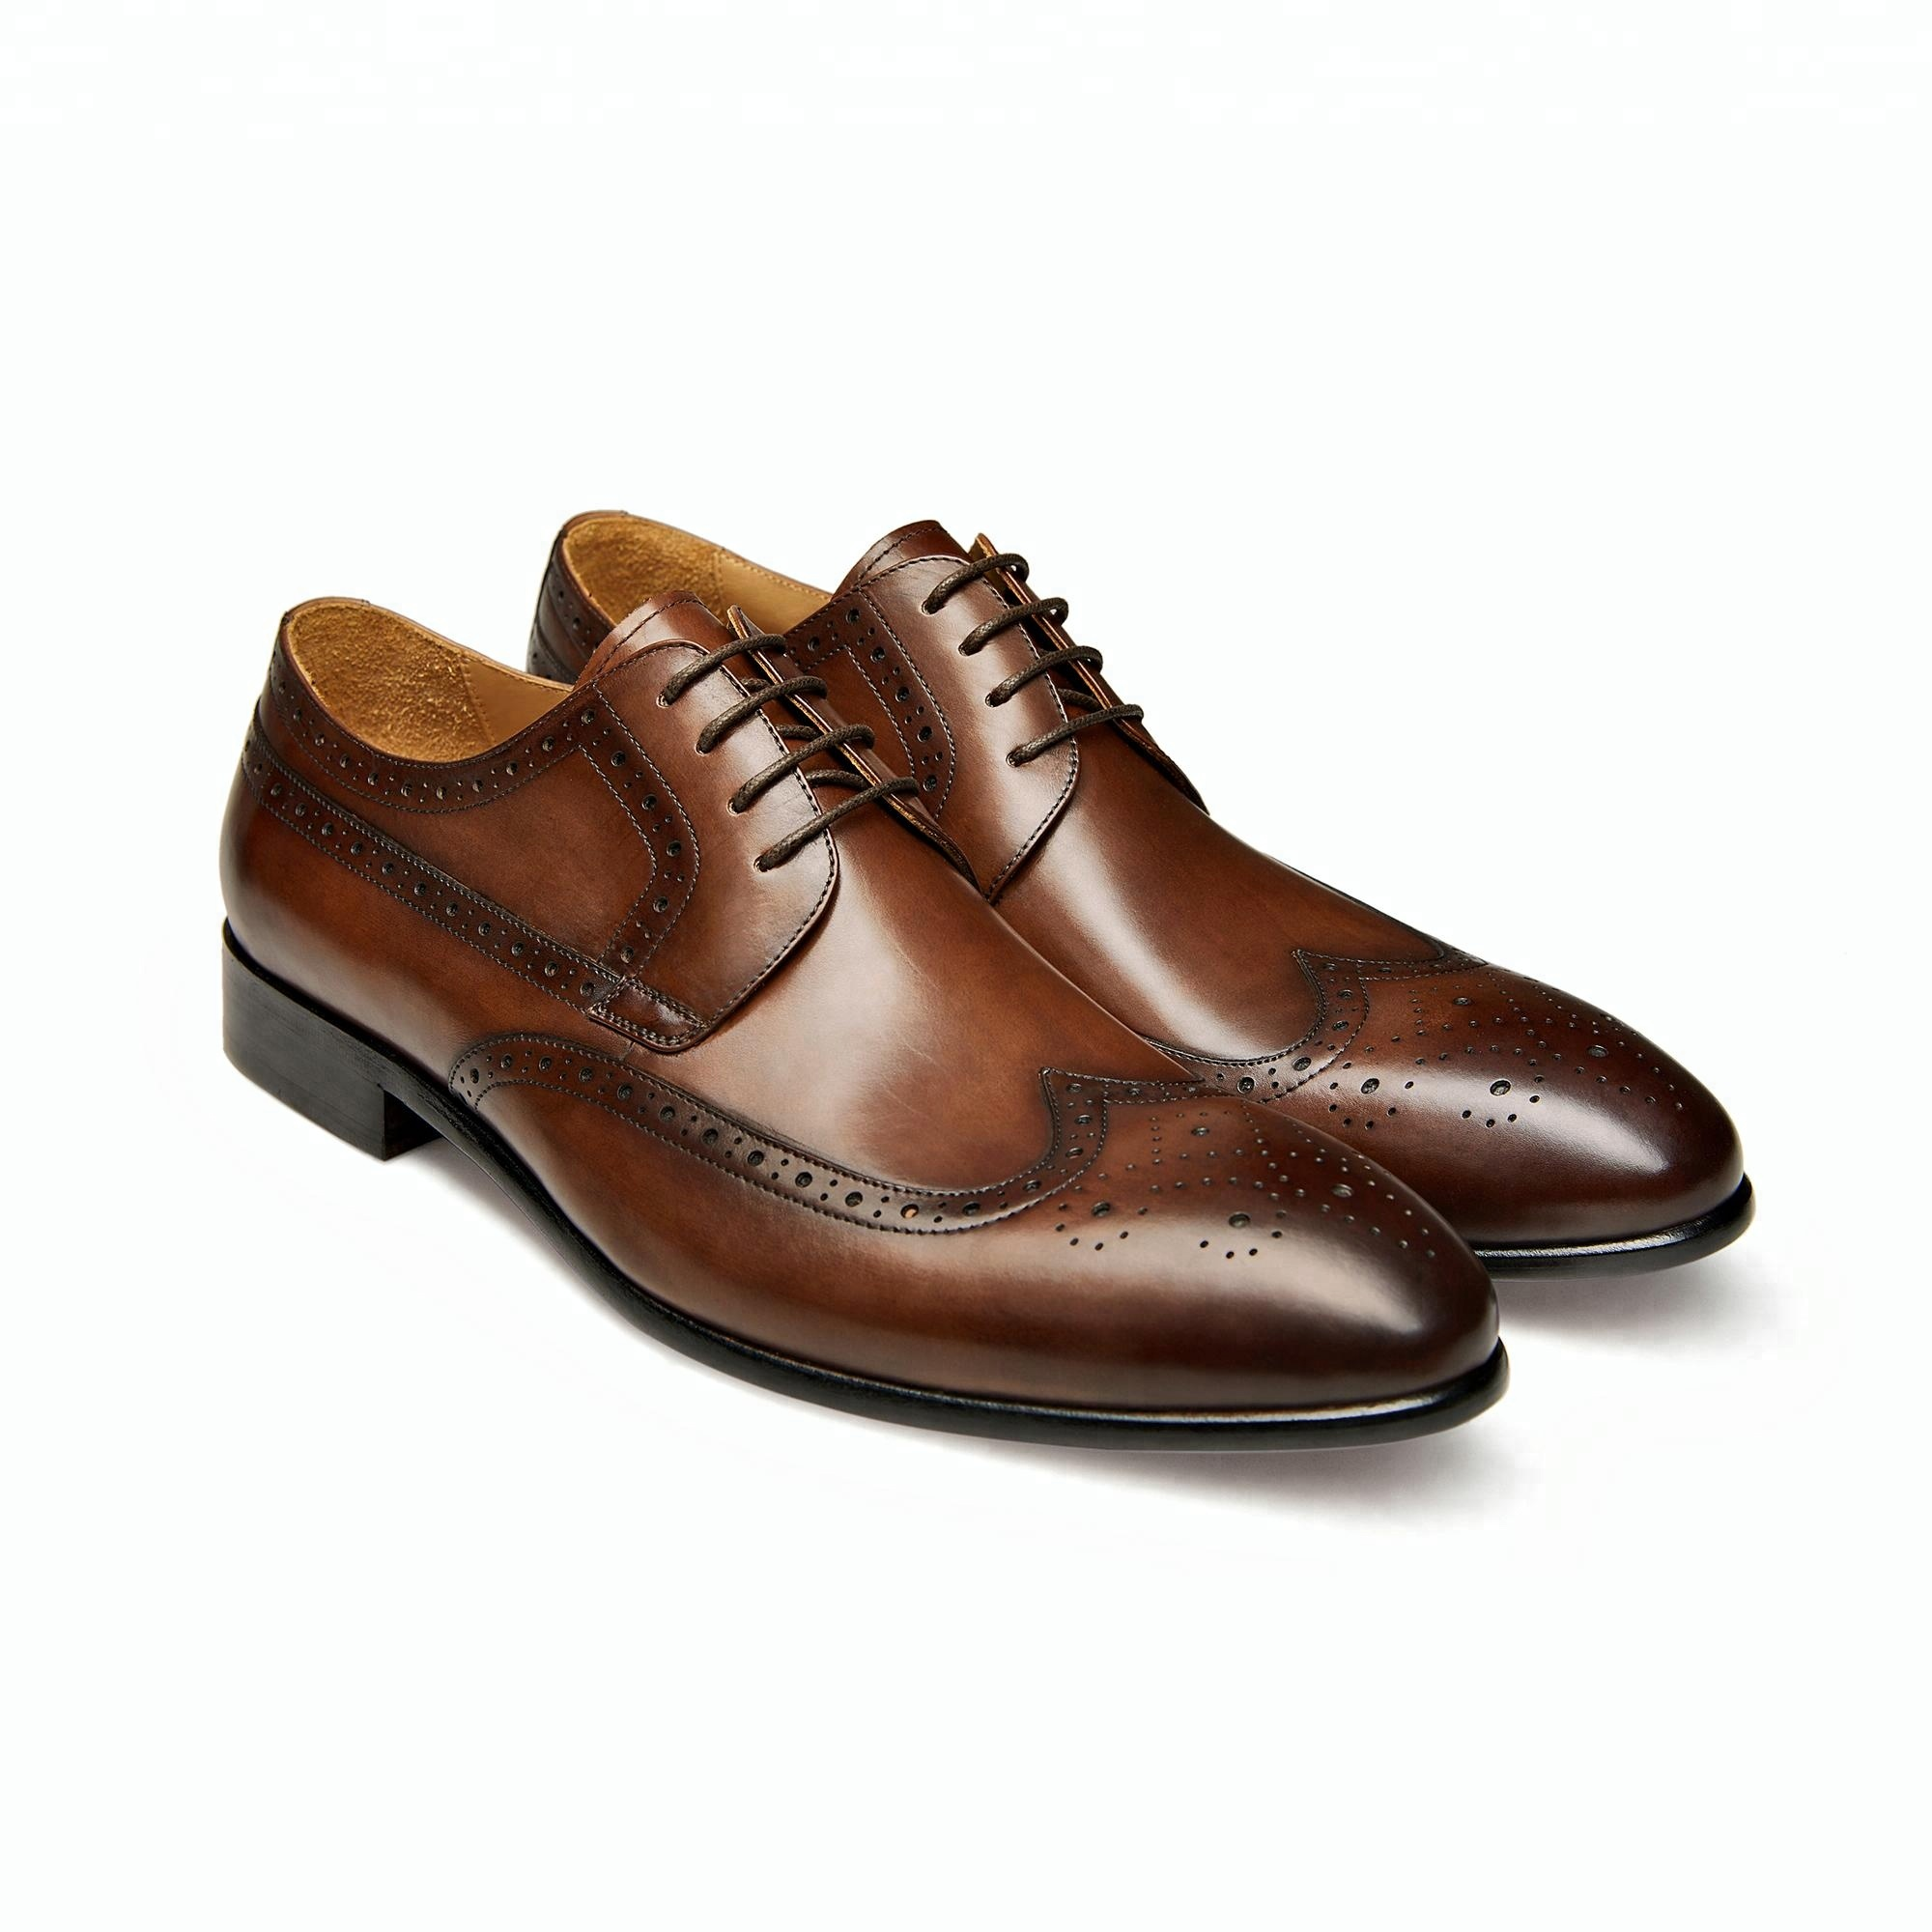 dress genuine leather 2018pure leather shoes brown OZ0Yzxq